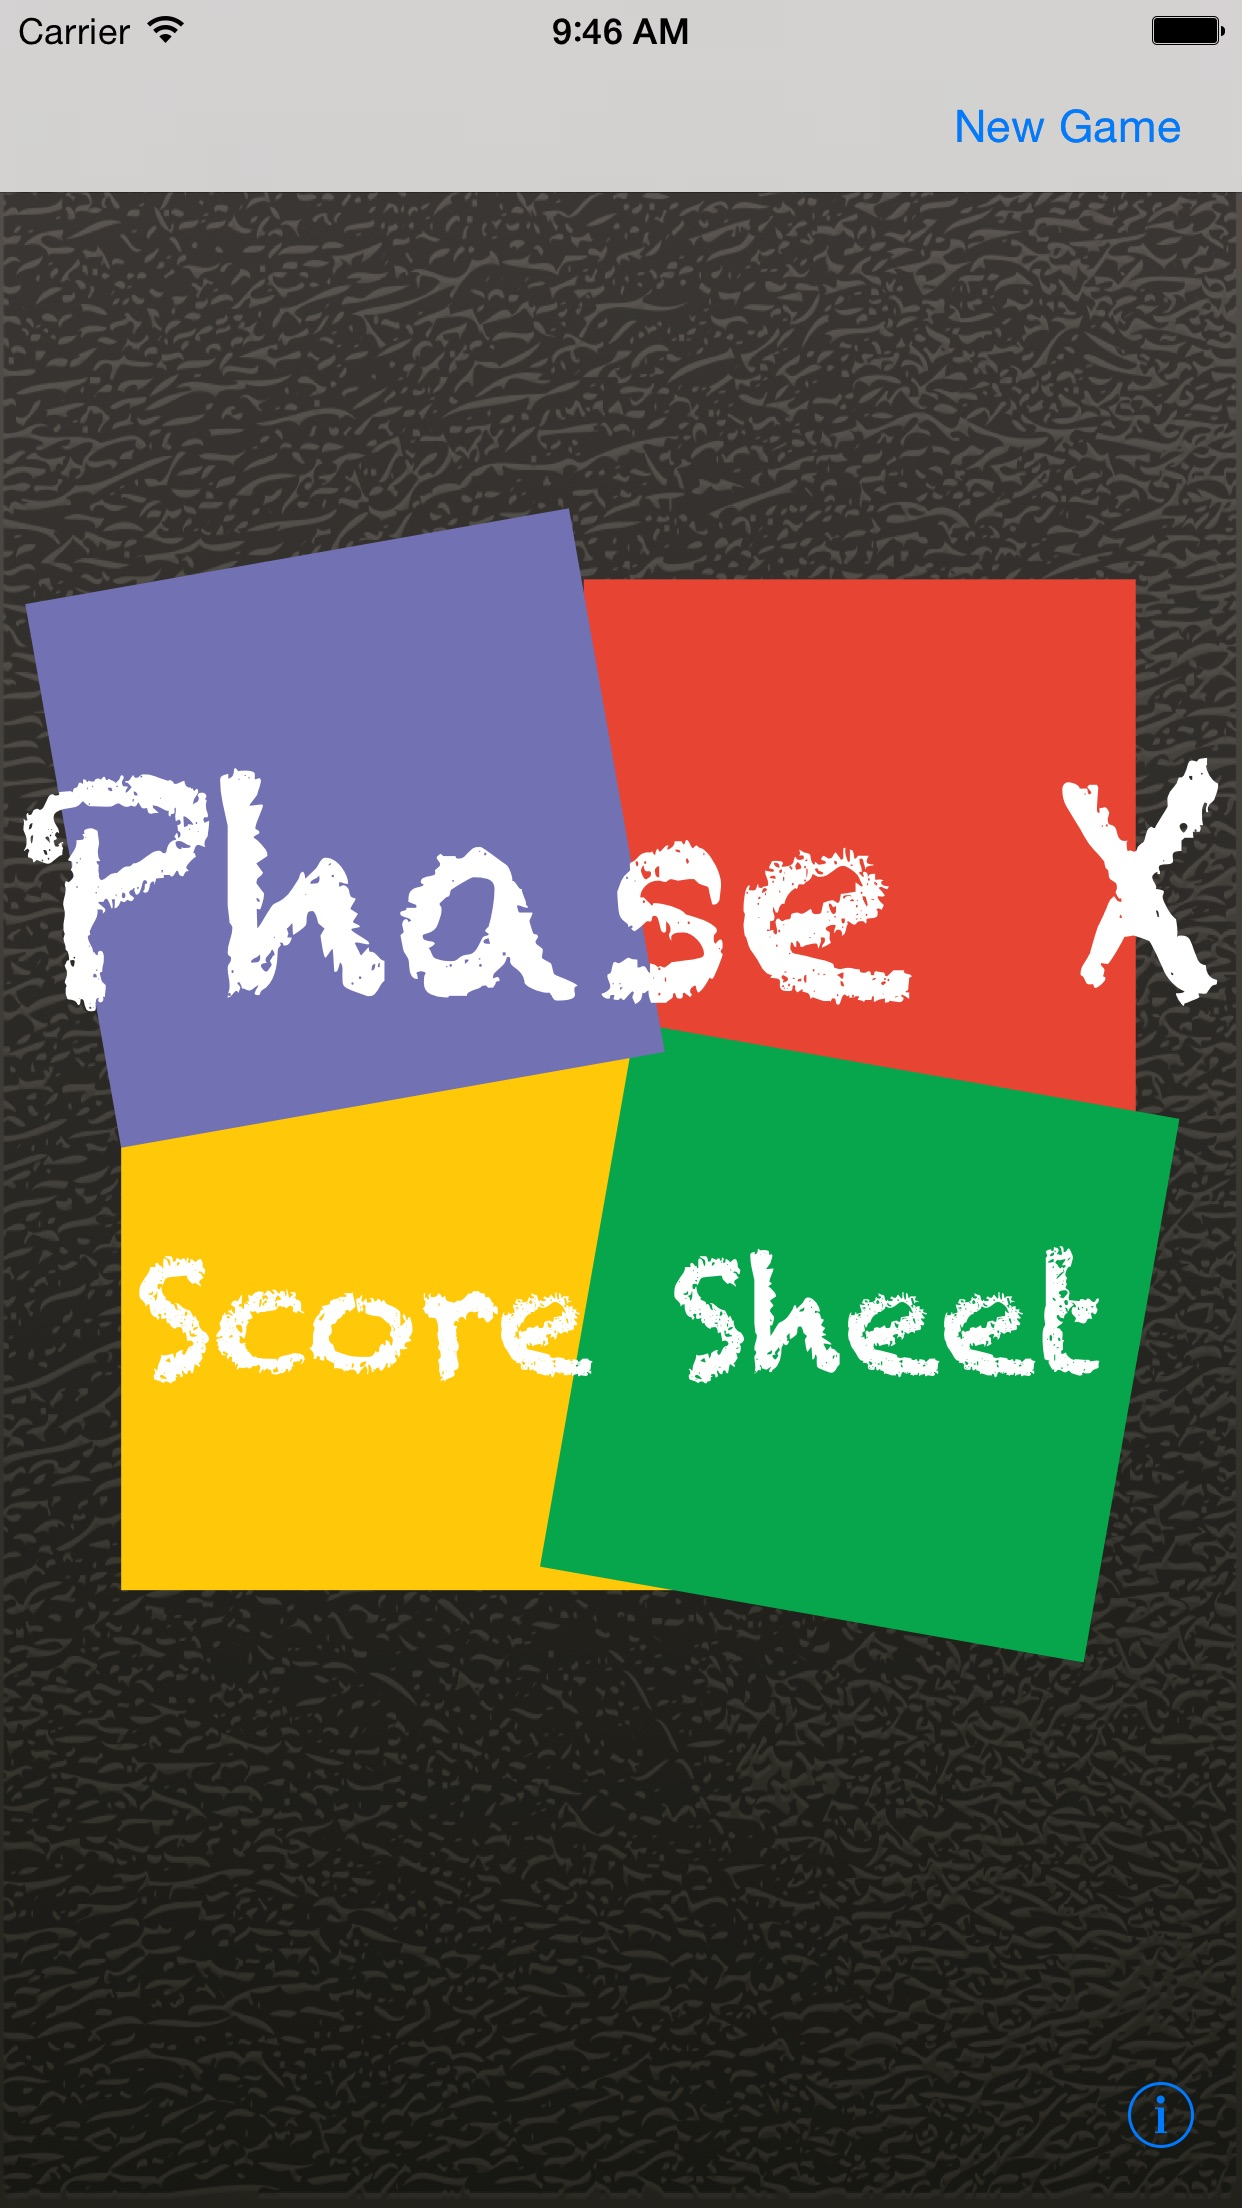 Phase 10 Score Sheet Screenshot